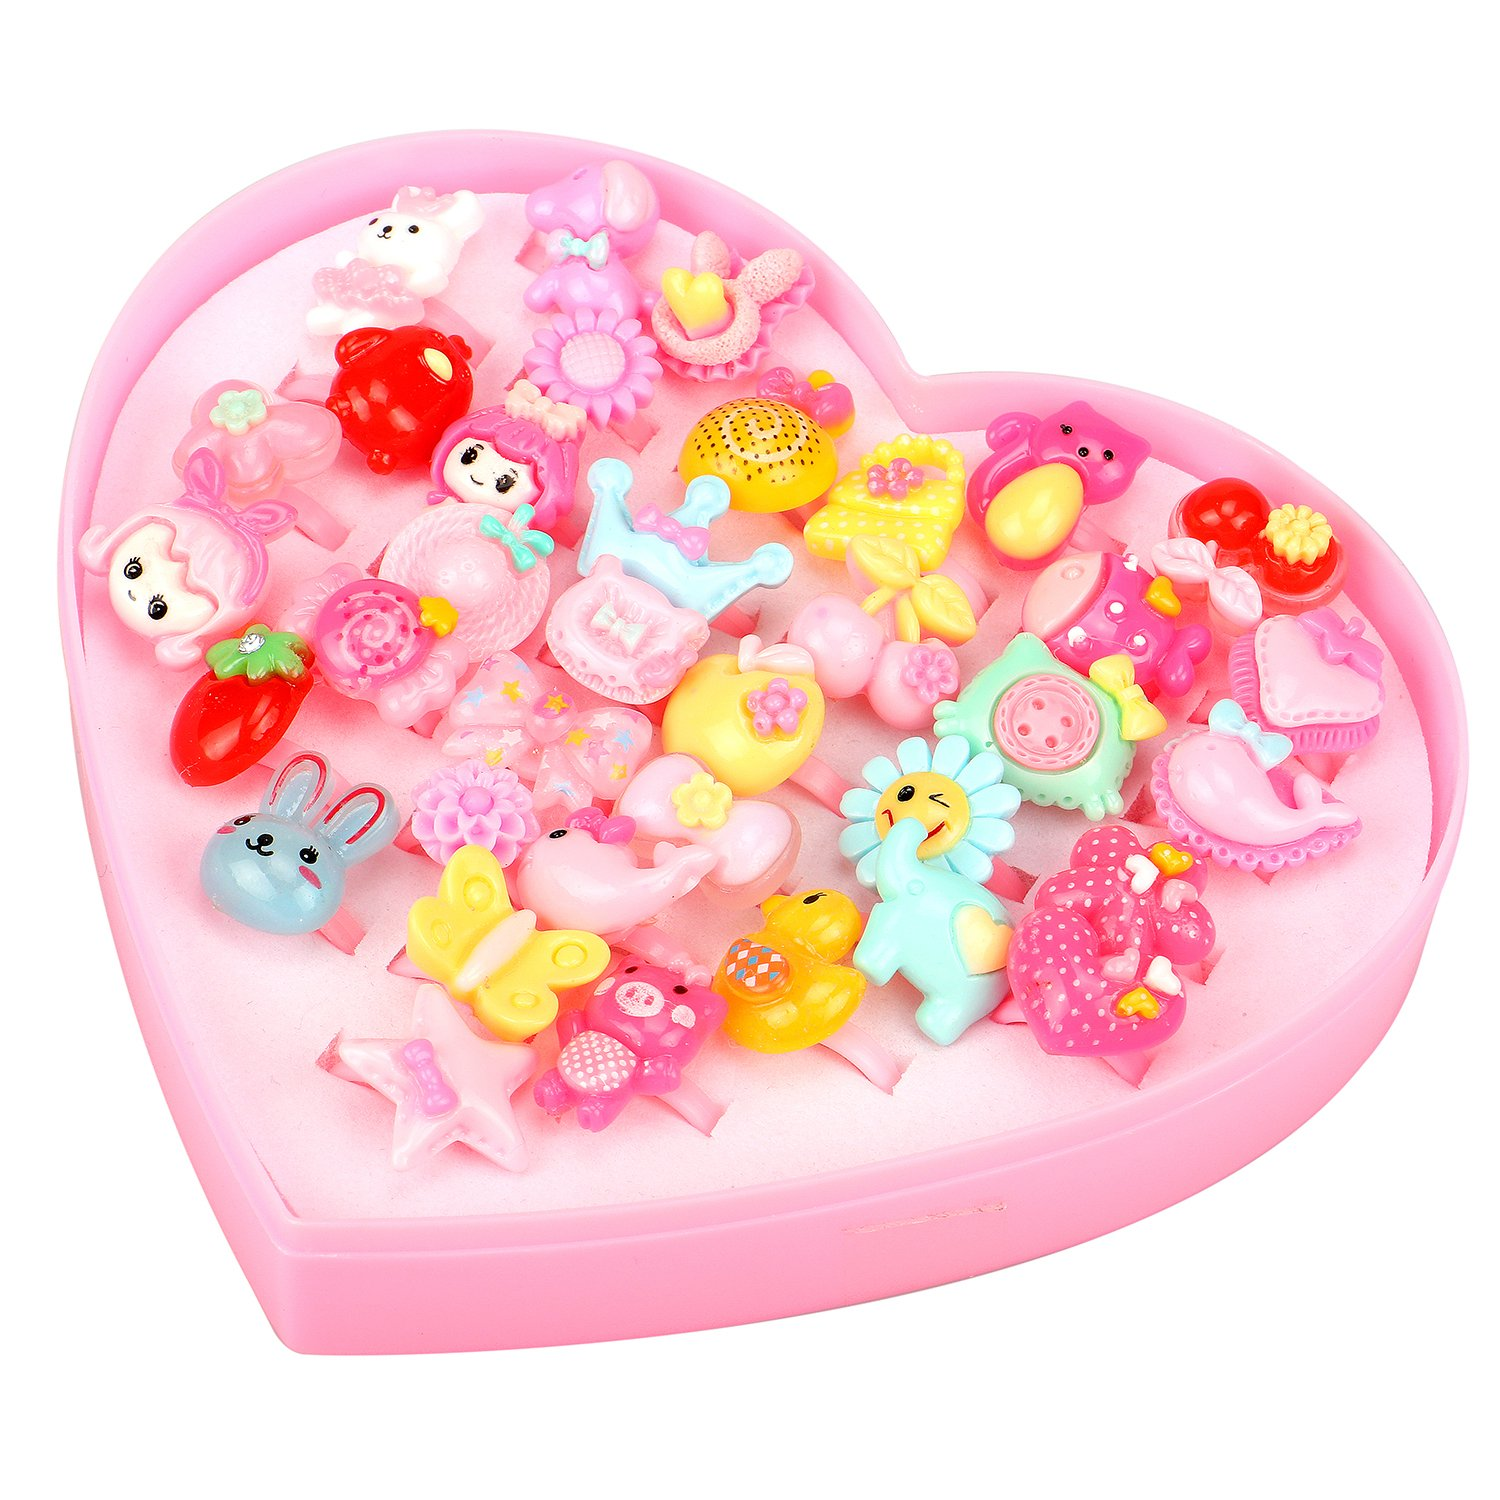 Little Girls Princess Jewelry Rings Value Set Pretend Play and Dress Up Rings for Kids Birthday Party Supplies Pack of 36 Pcs (Heart-Shaped Box)